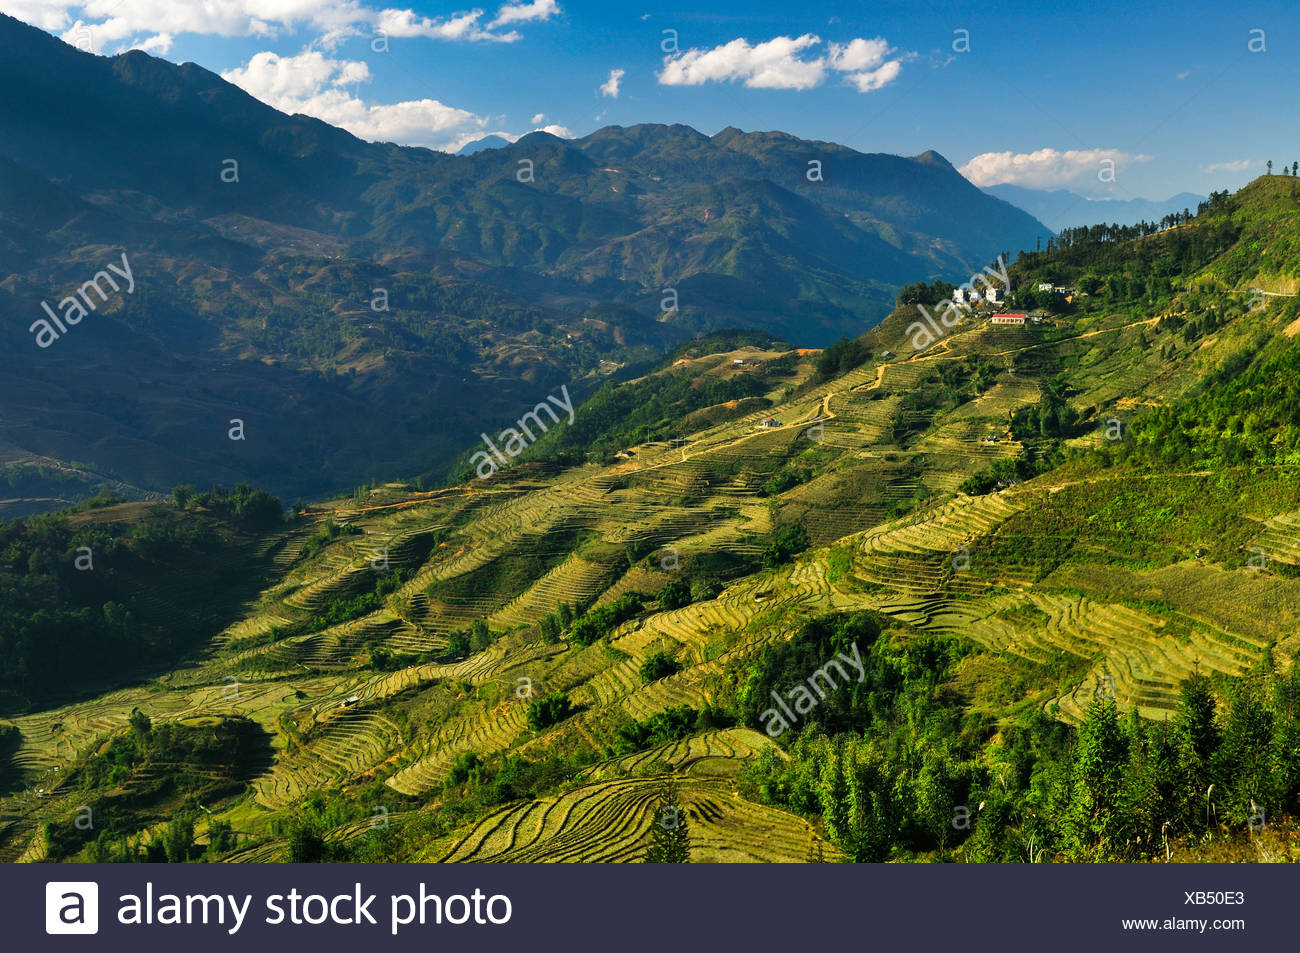 Green rice terraces, rice paddies in Sapa or Sa Pa, Lao Cai province, northern Vietnam, Vietnam, Southeast Asia, Asia - Stock Image